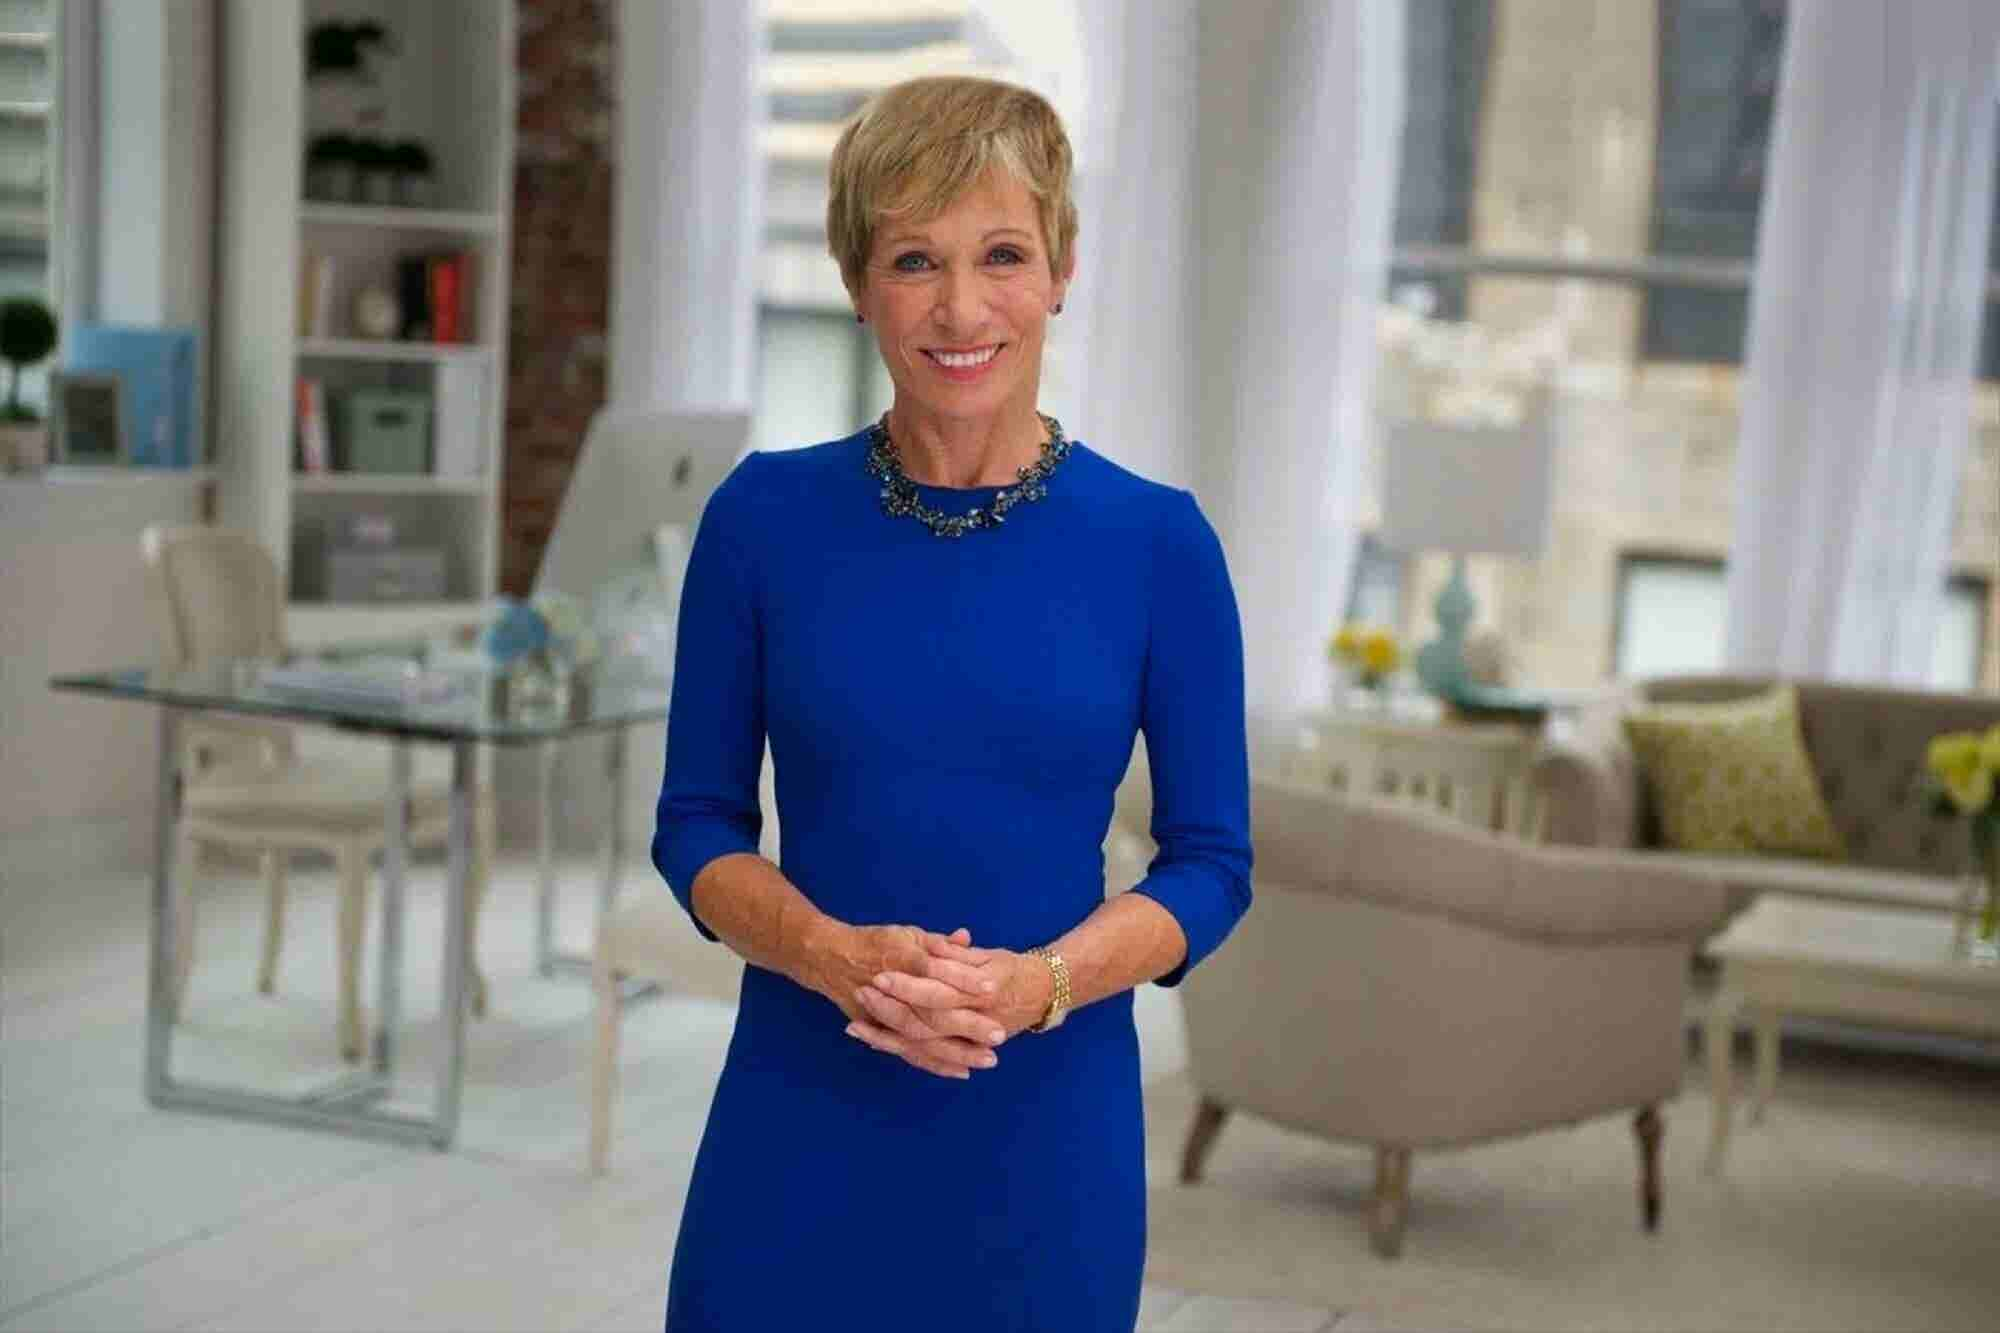 (Podcast) Barbara Corcoran Reveals How to Not Be Afraid of Taking Risk...